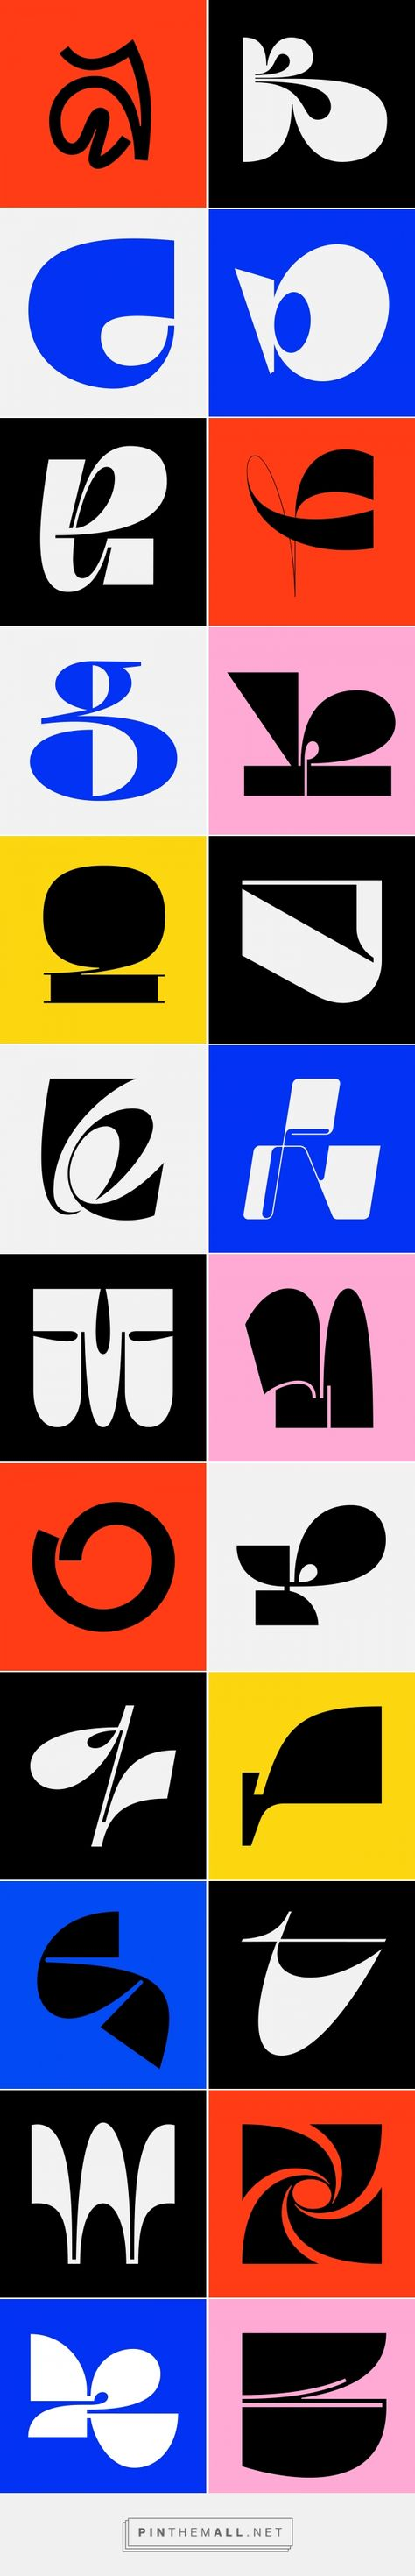 36daysoftype 2019 on Behance... - a grouped images picture